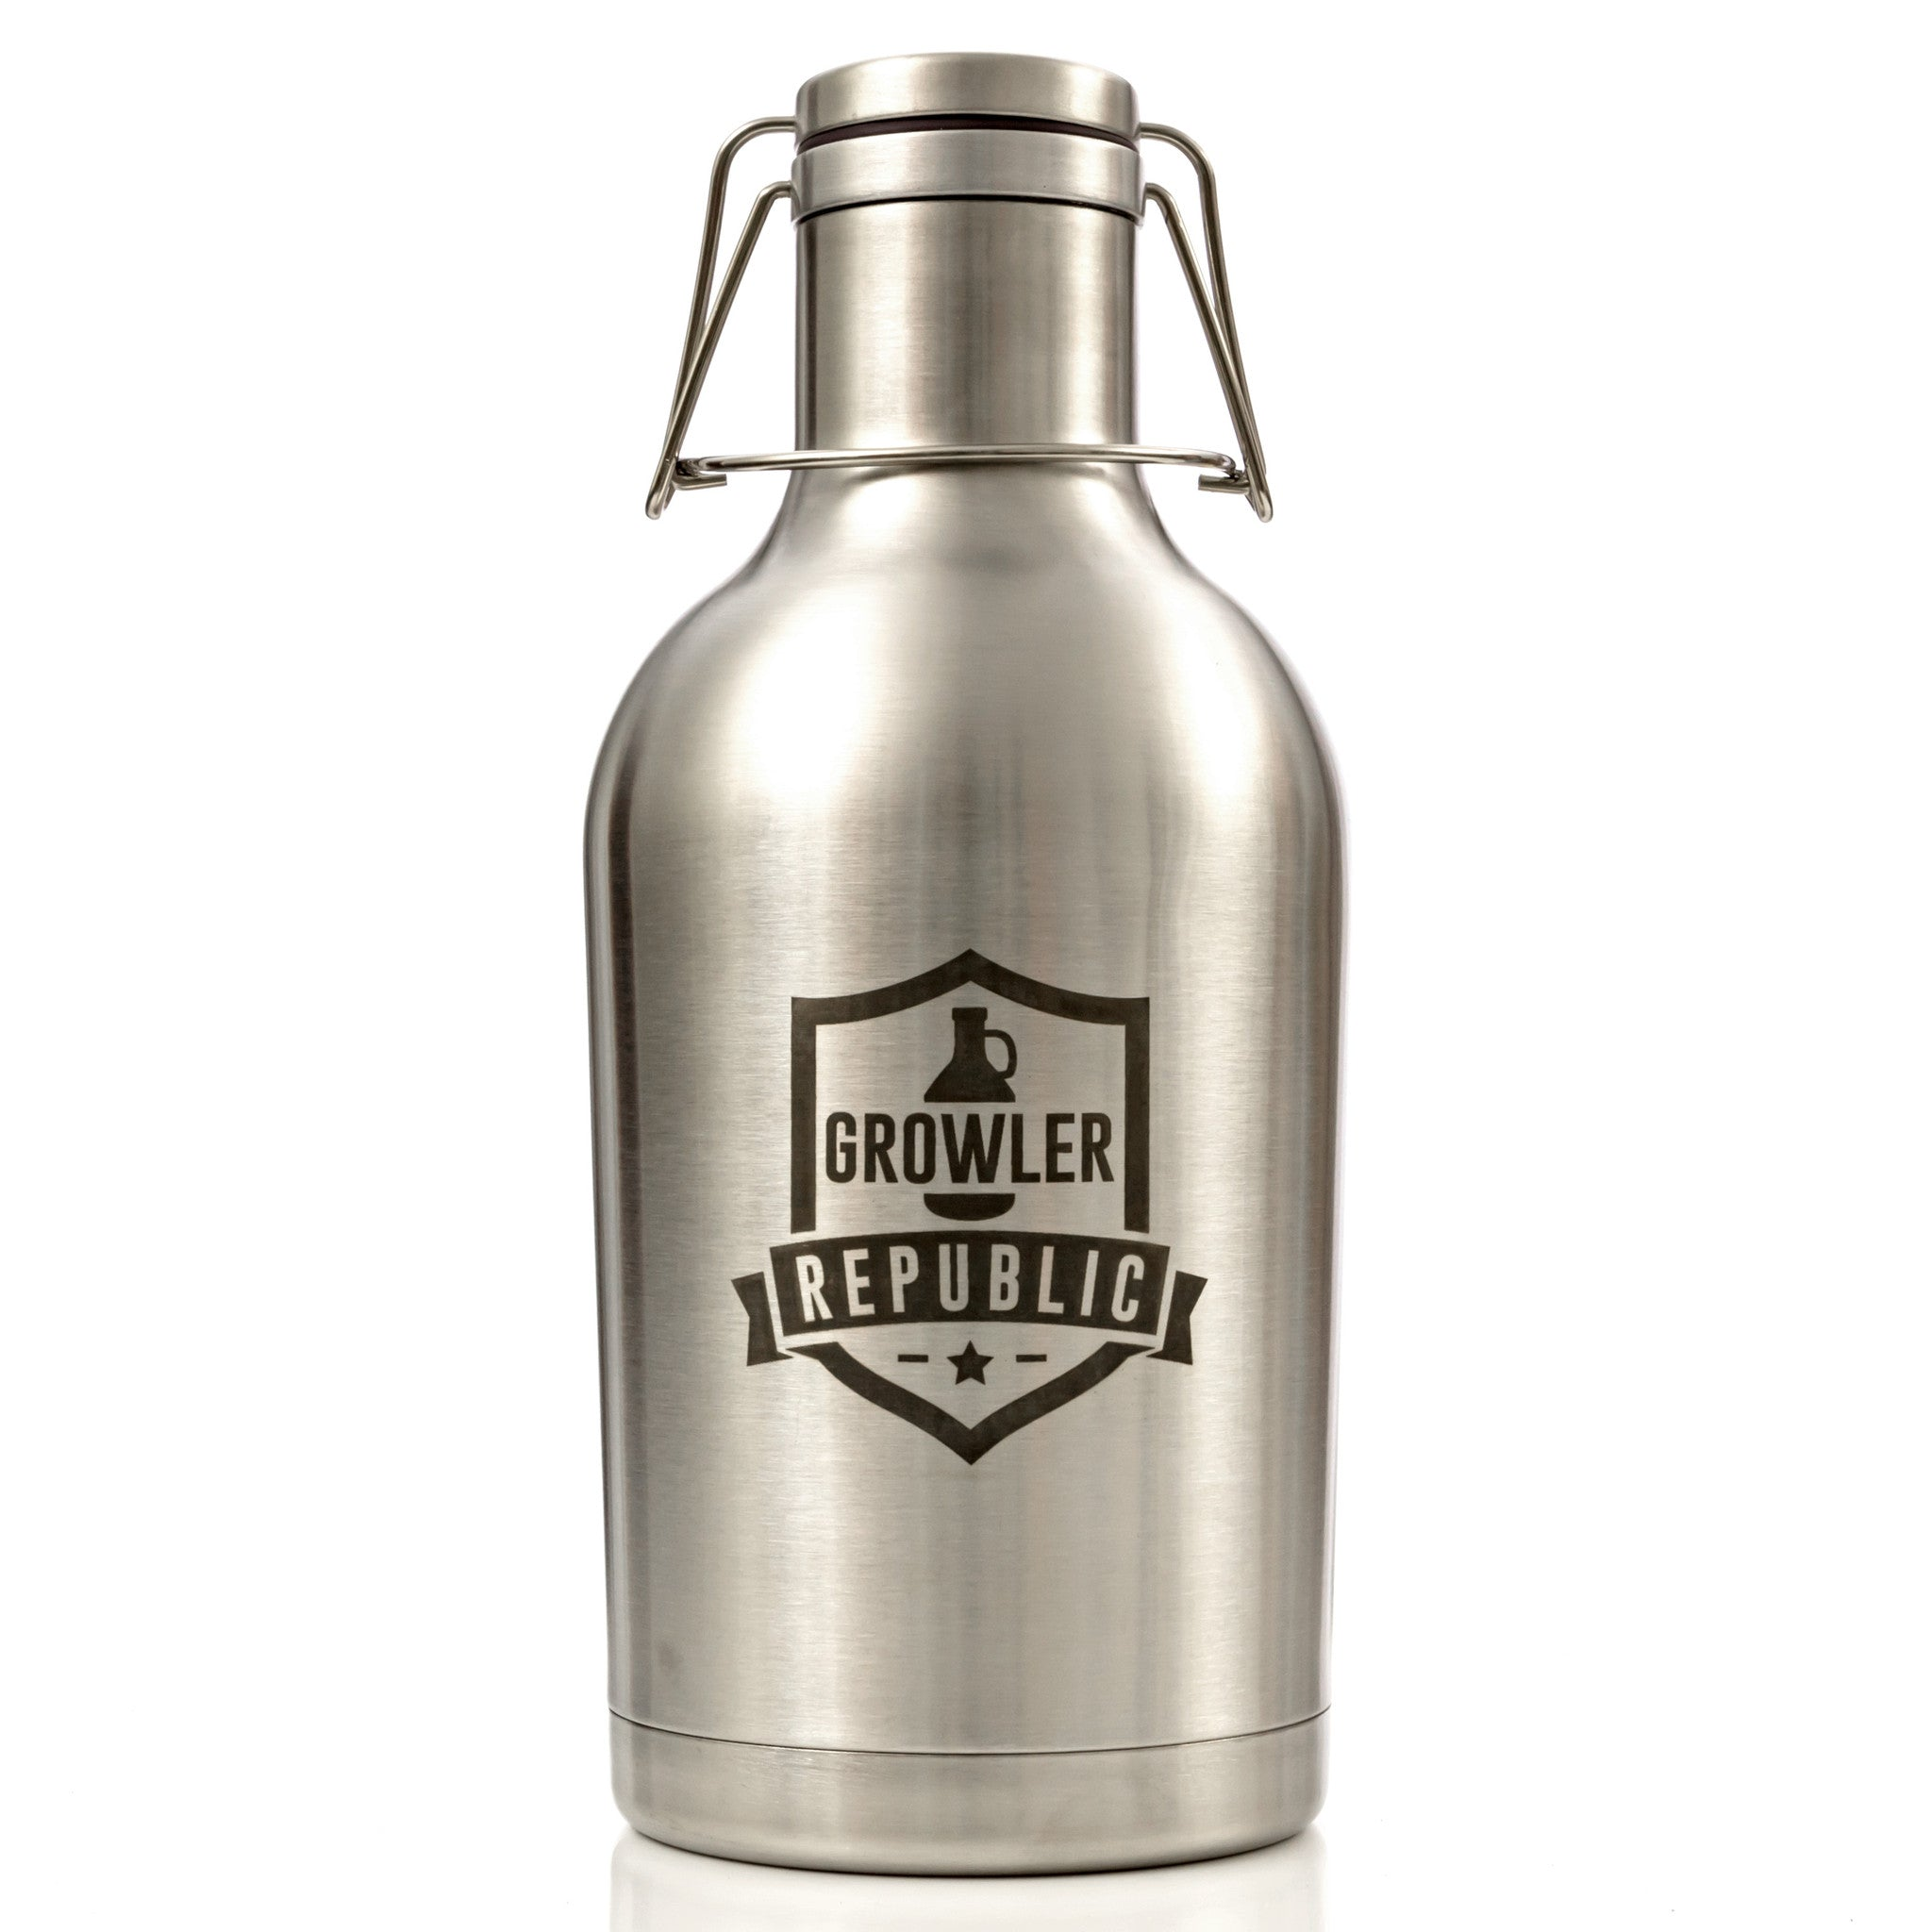 More growlers on the way!